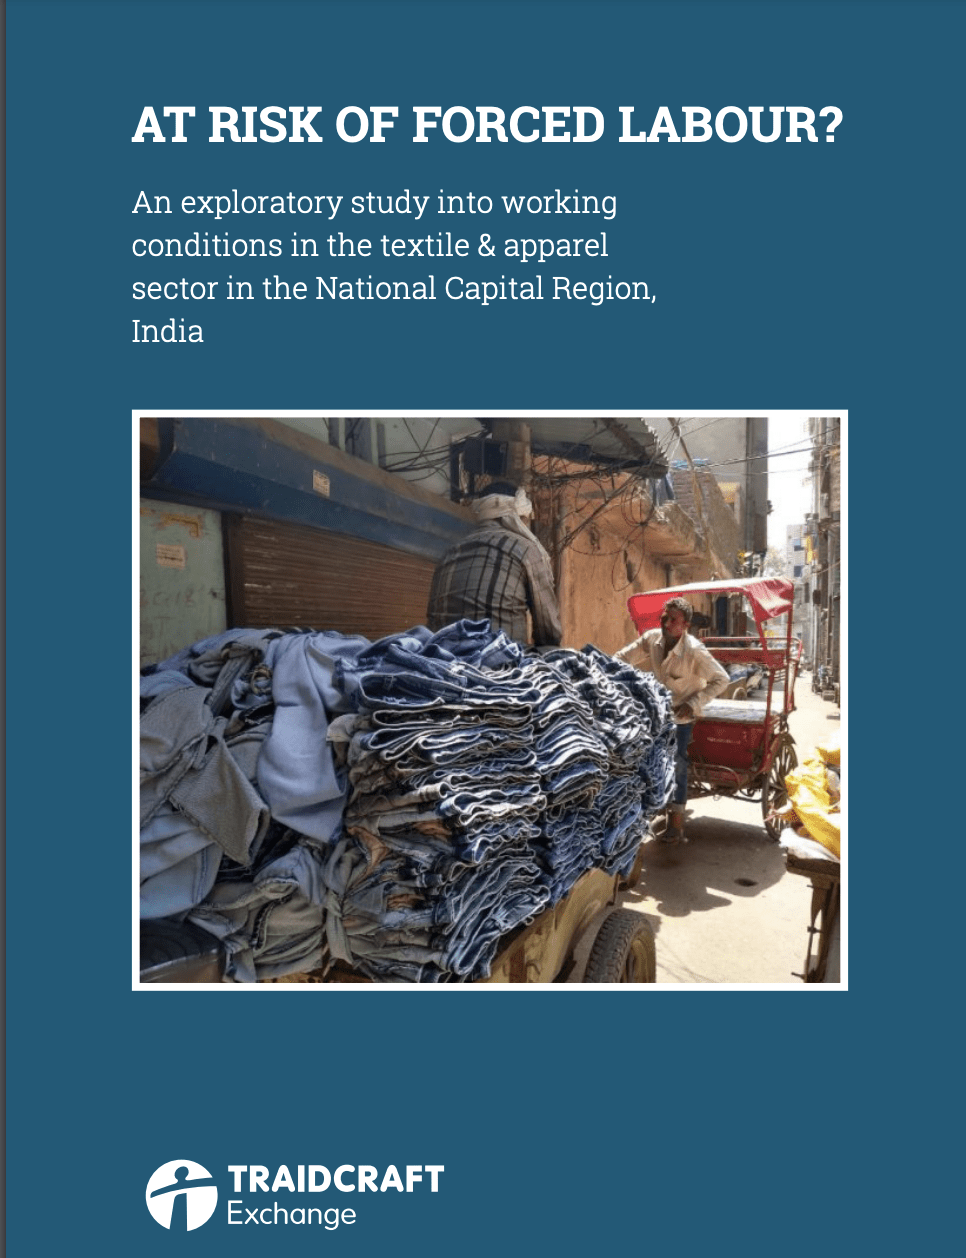 At Risk of Forced Labour? An exploratory study into working conditions in the textile & apparel sector in the National Capital Region, India